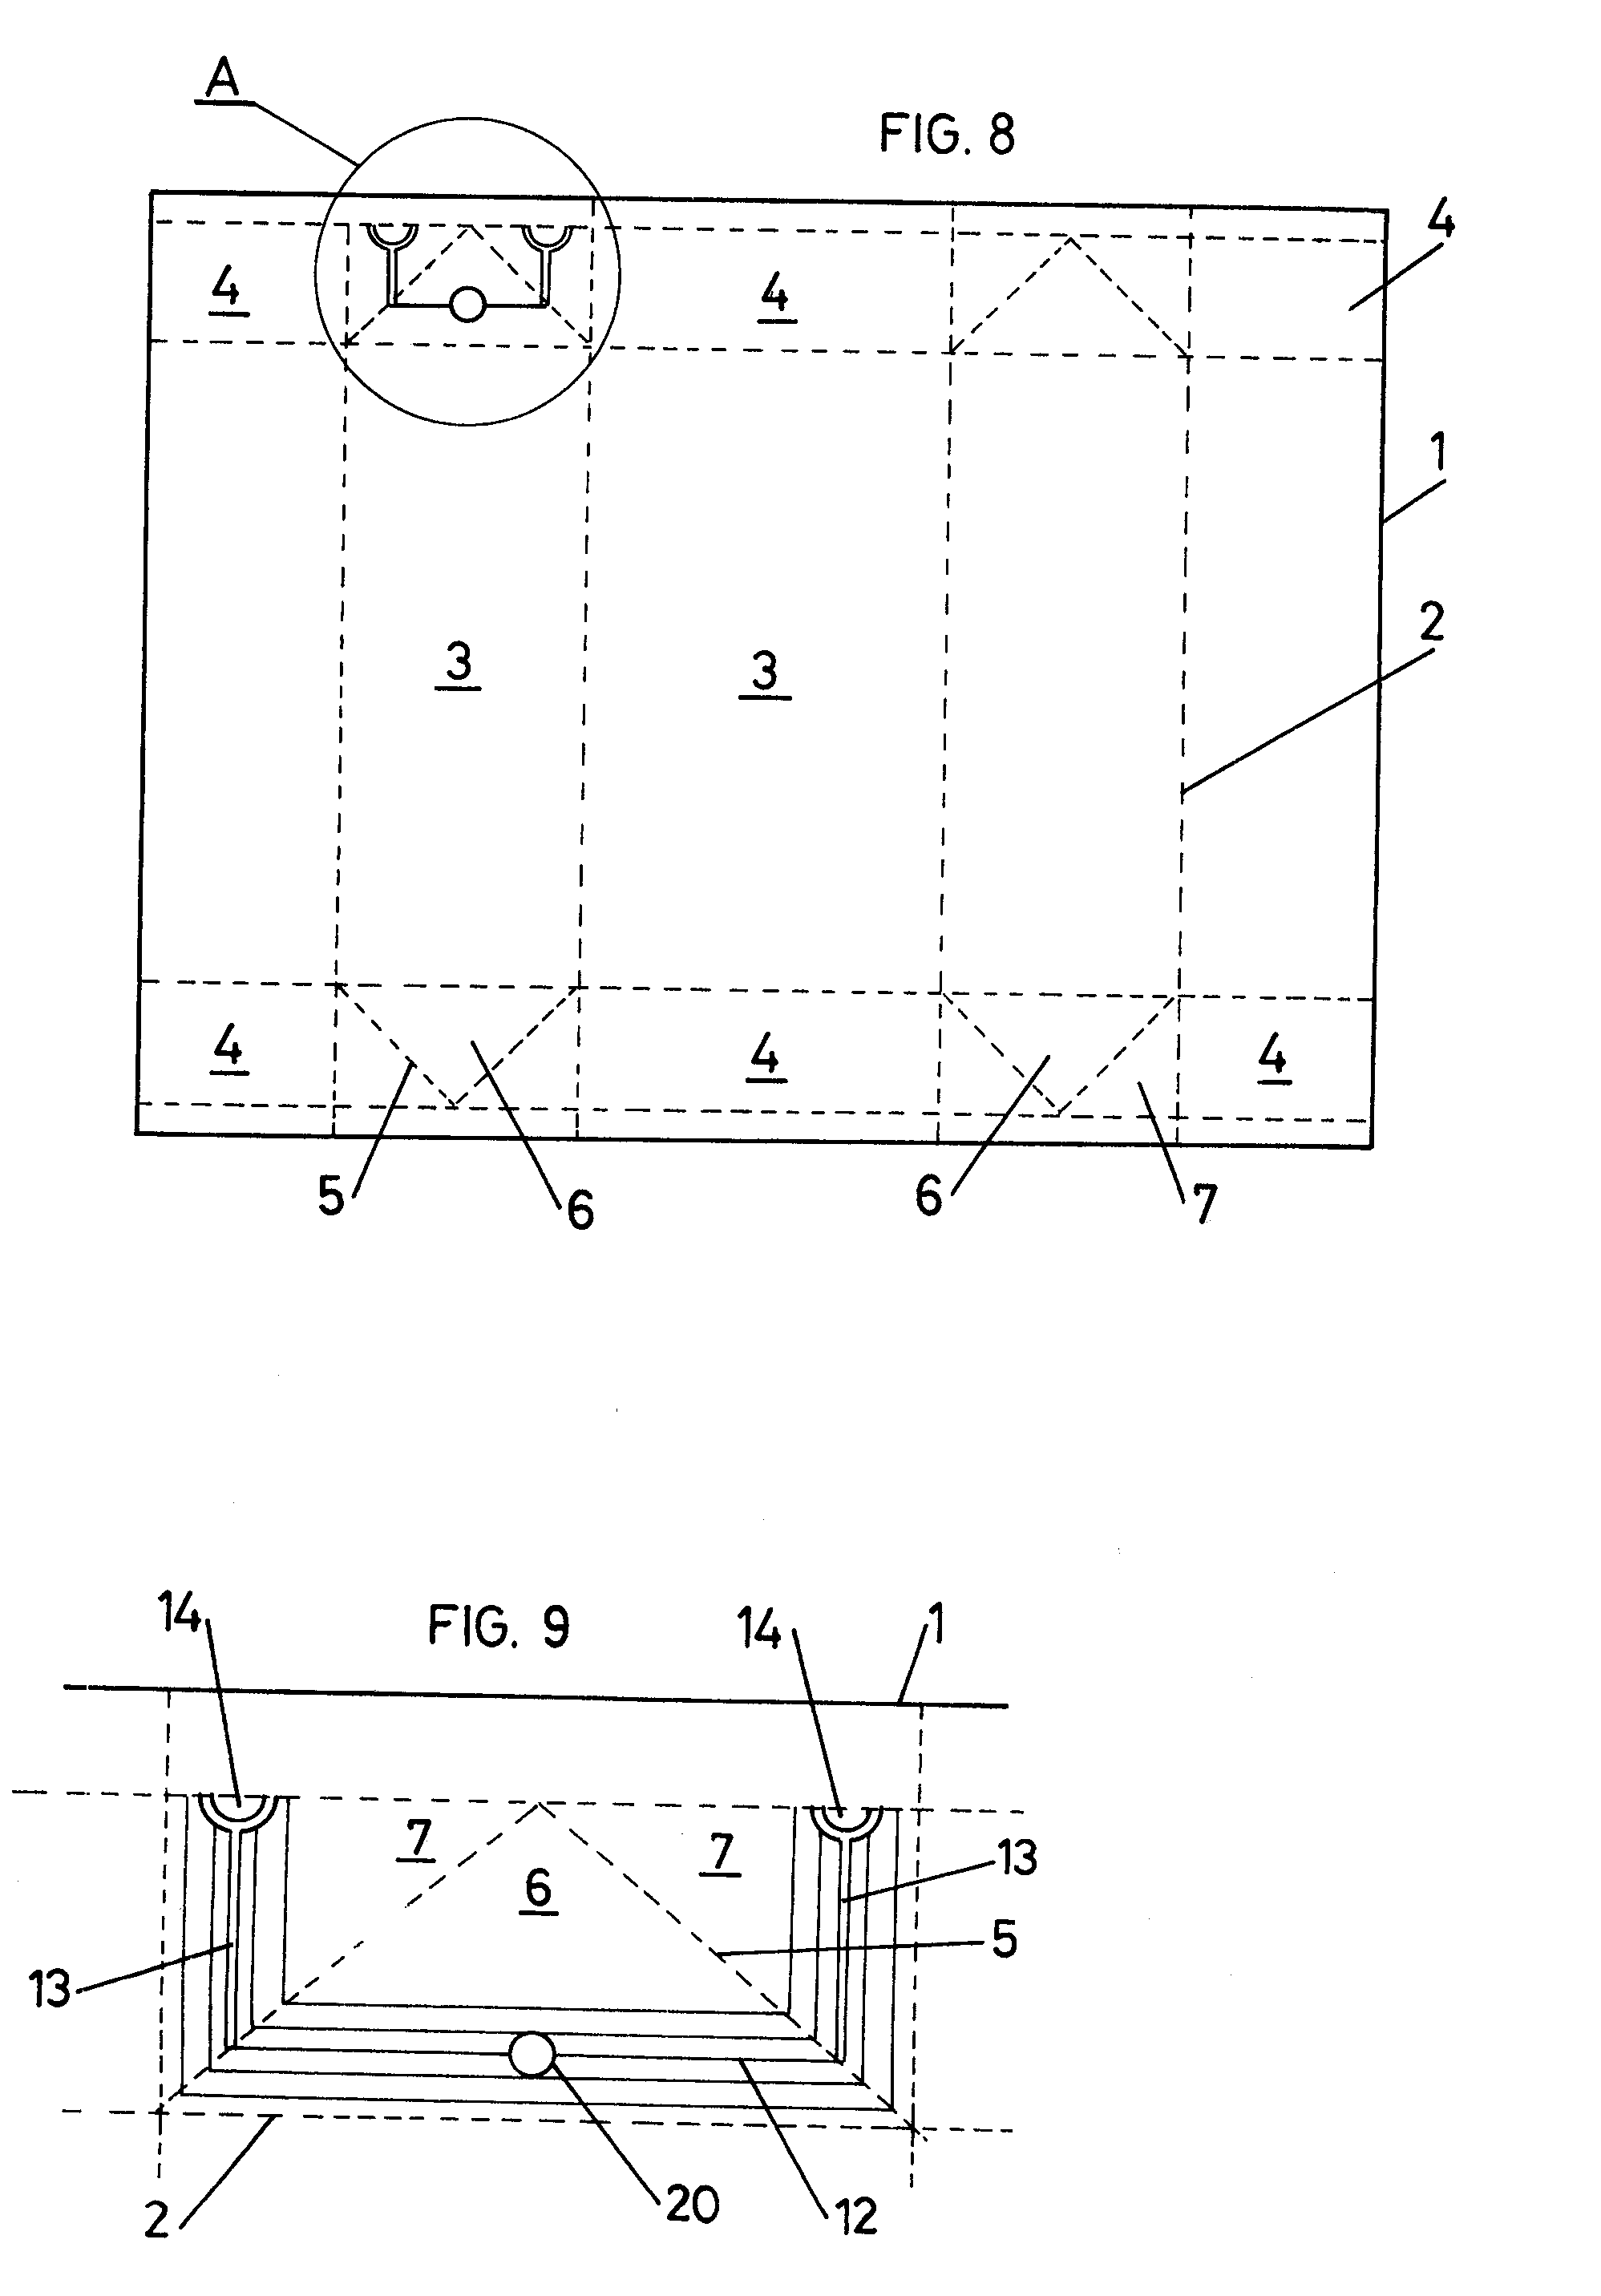 patent specification template - tetrapak dimensions qbn